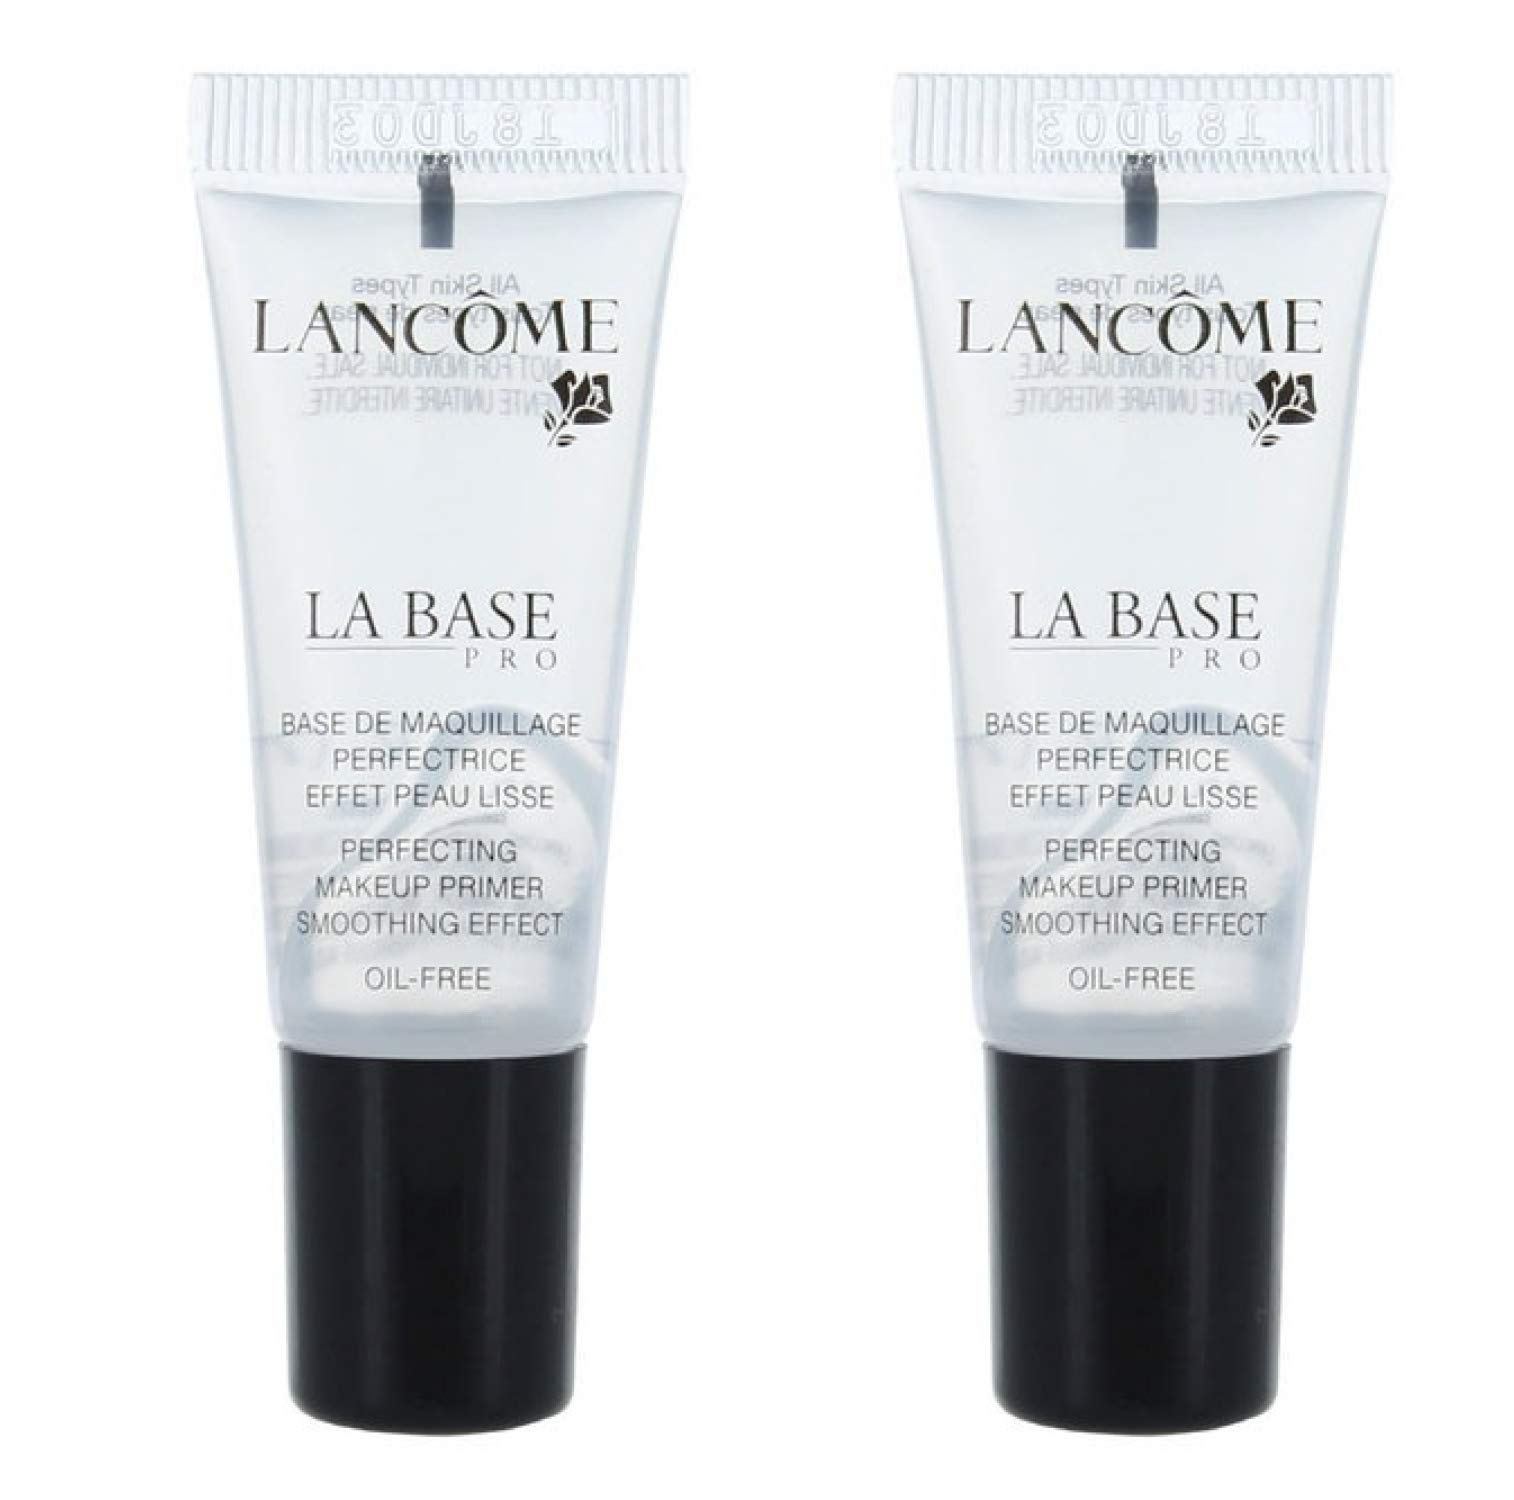 2 La Base Pro Perfecting Makeup Primer Smoothing Effect .23 Oz/7 Ml Each by La Base by LANCOME (Image #1)